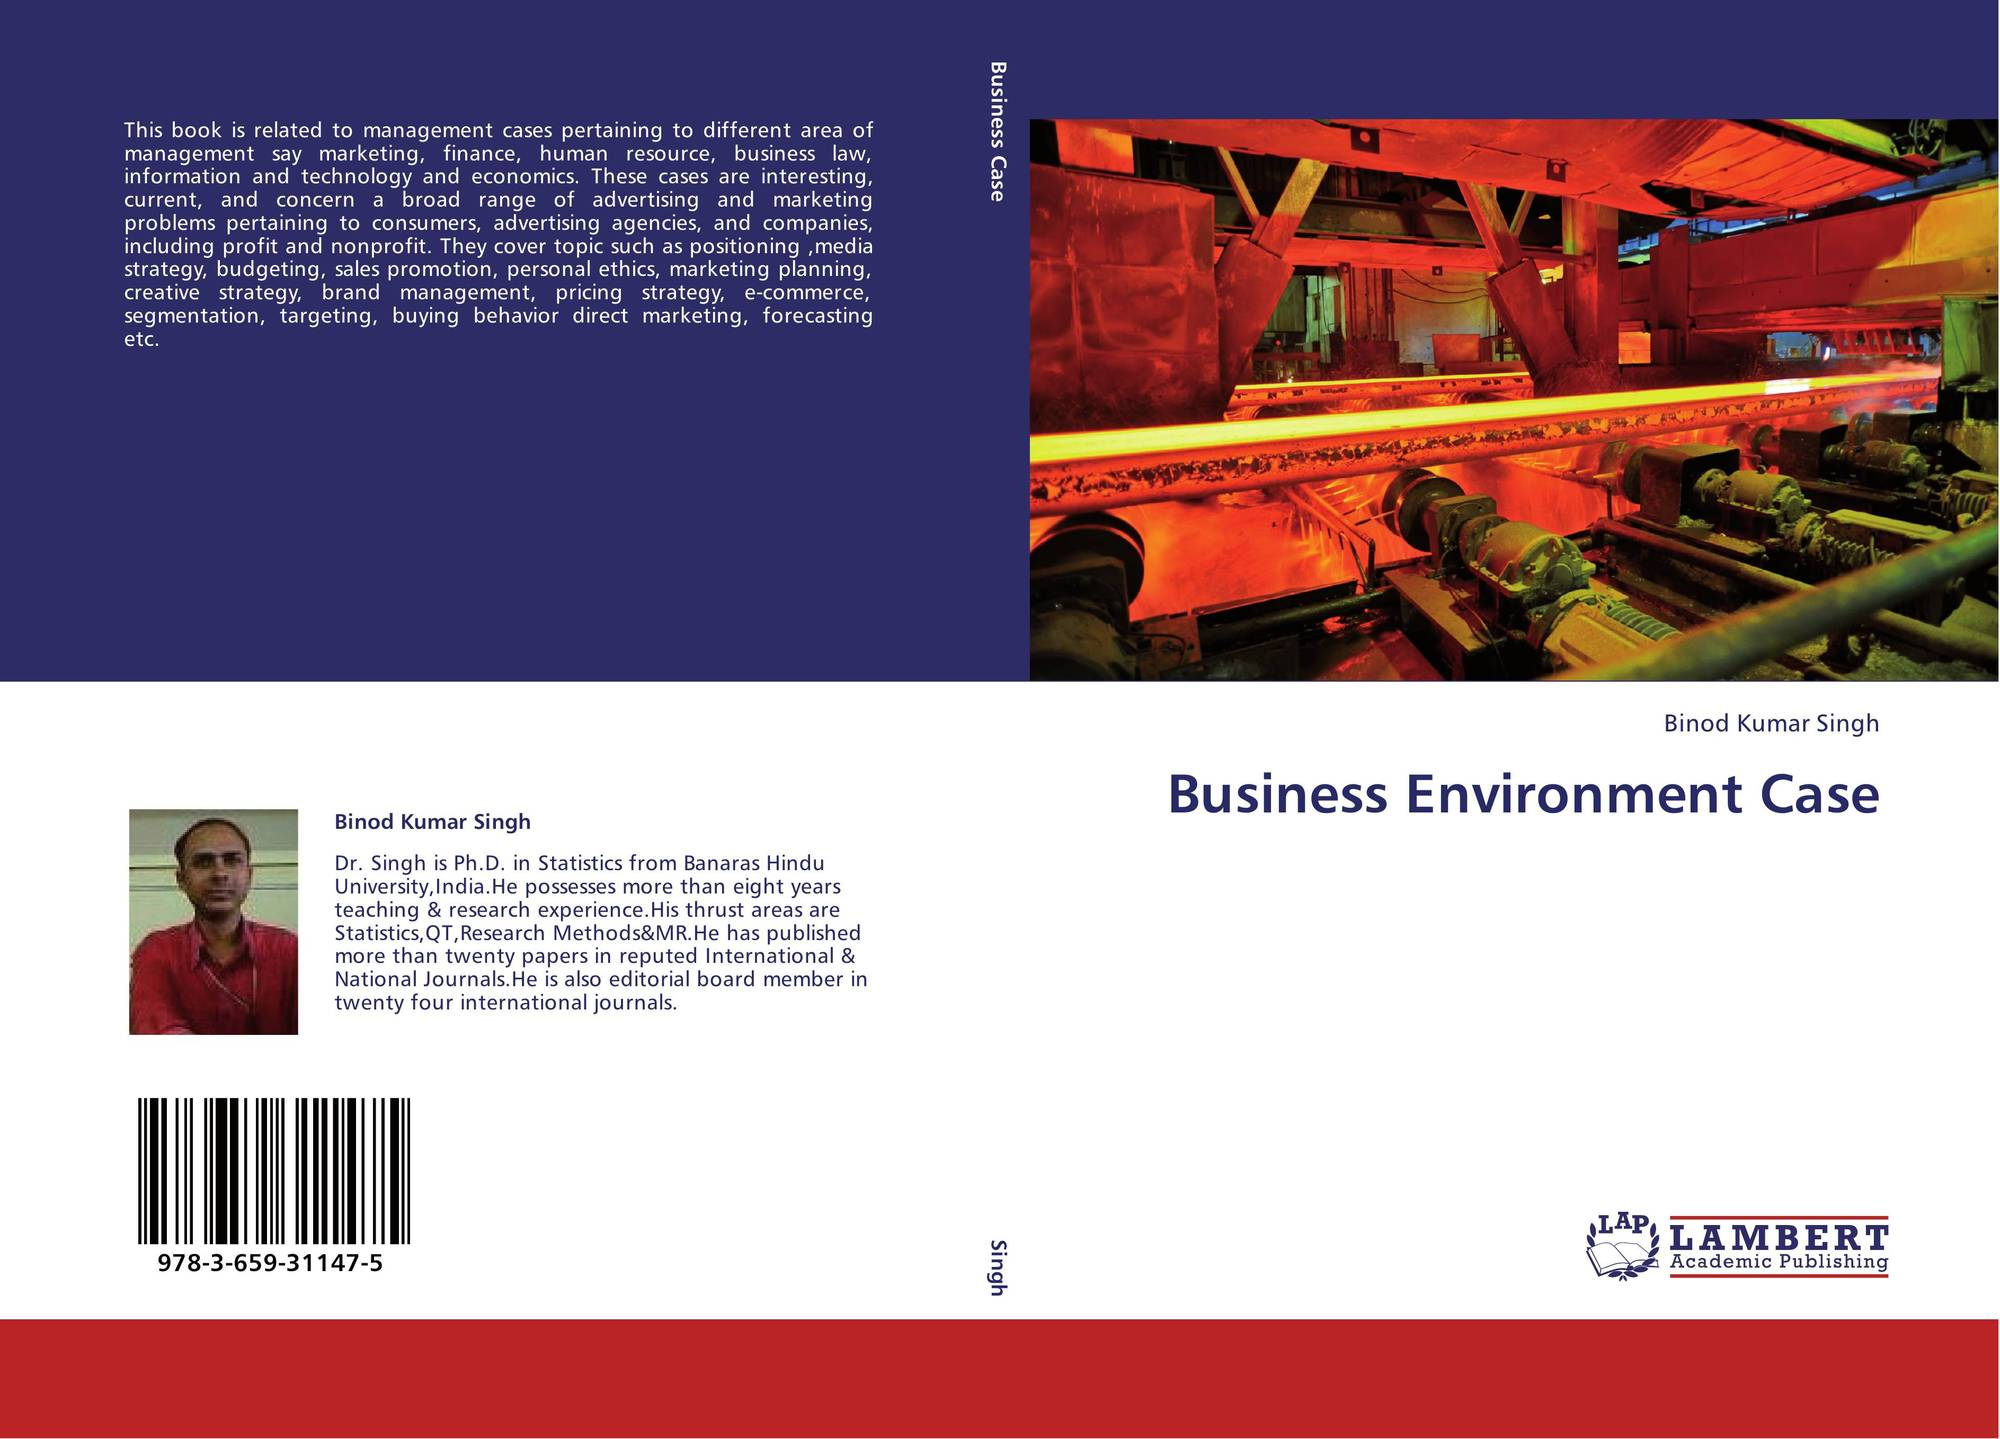 global business enviroment m2a1 case study Erm delivers innovative solutions for leading business and government clients everyday case studies case study: shell international.